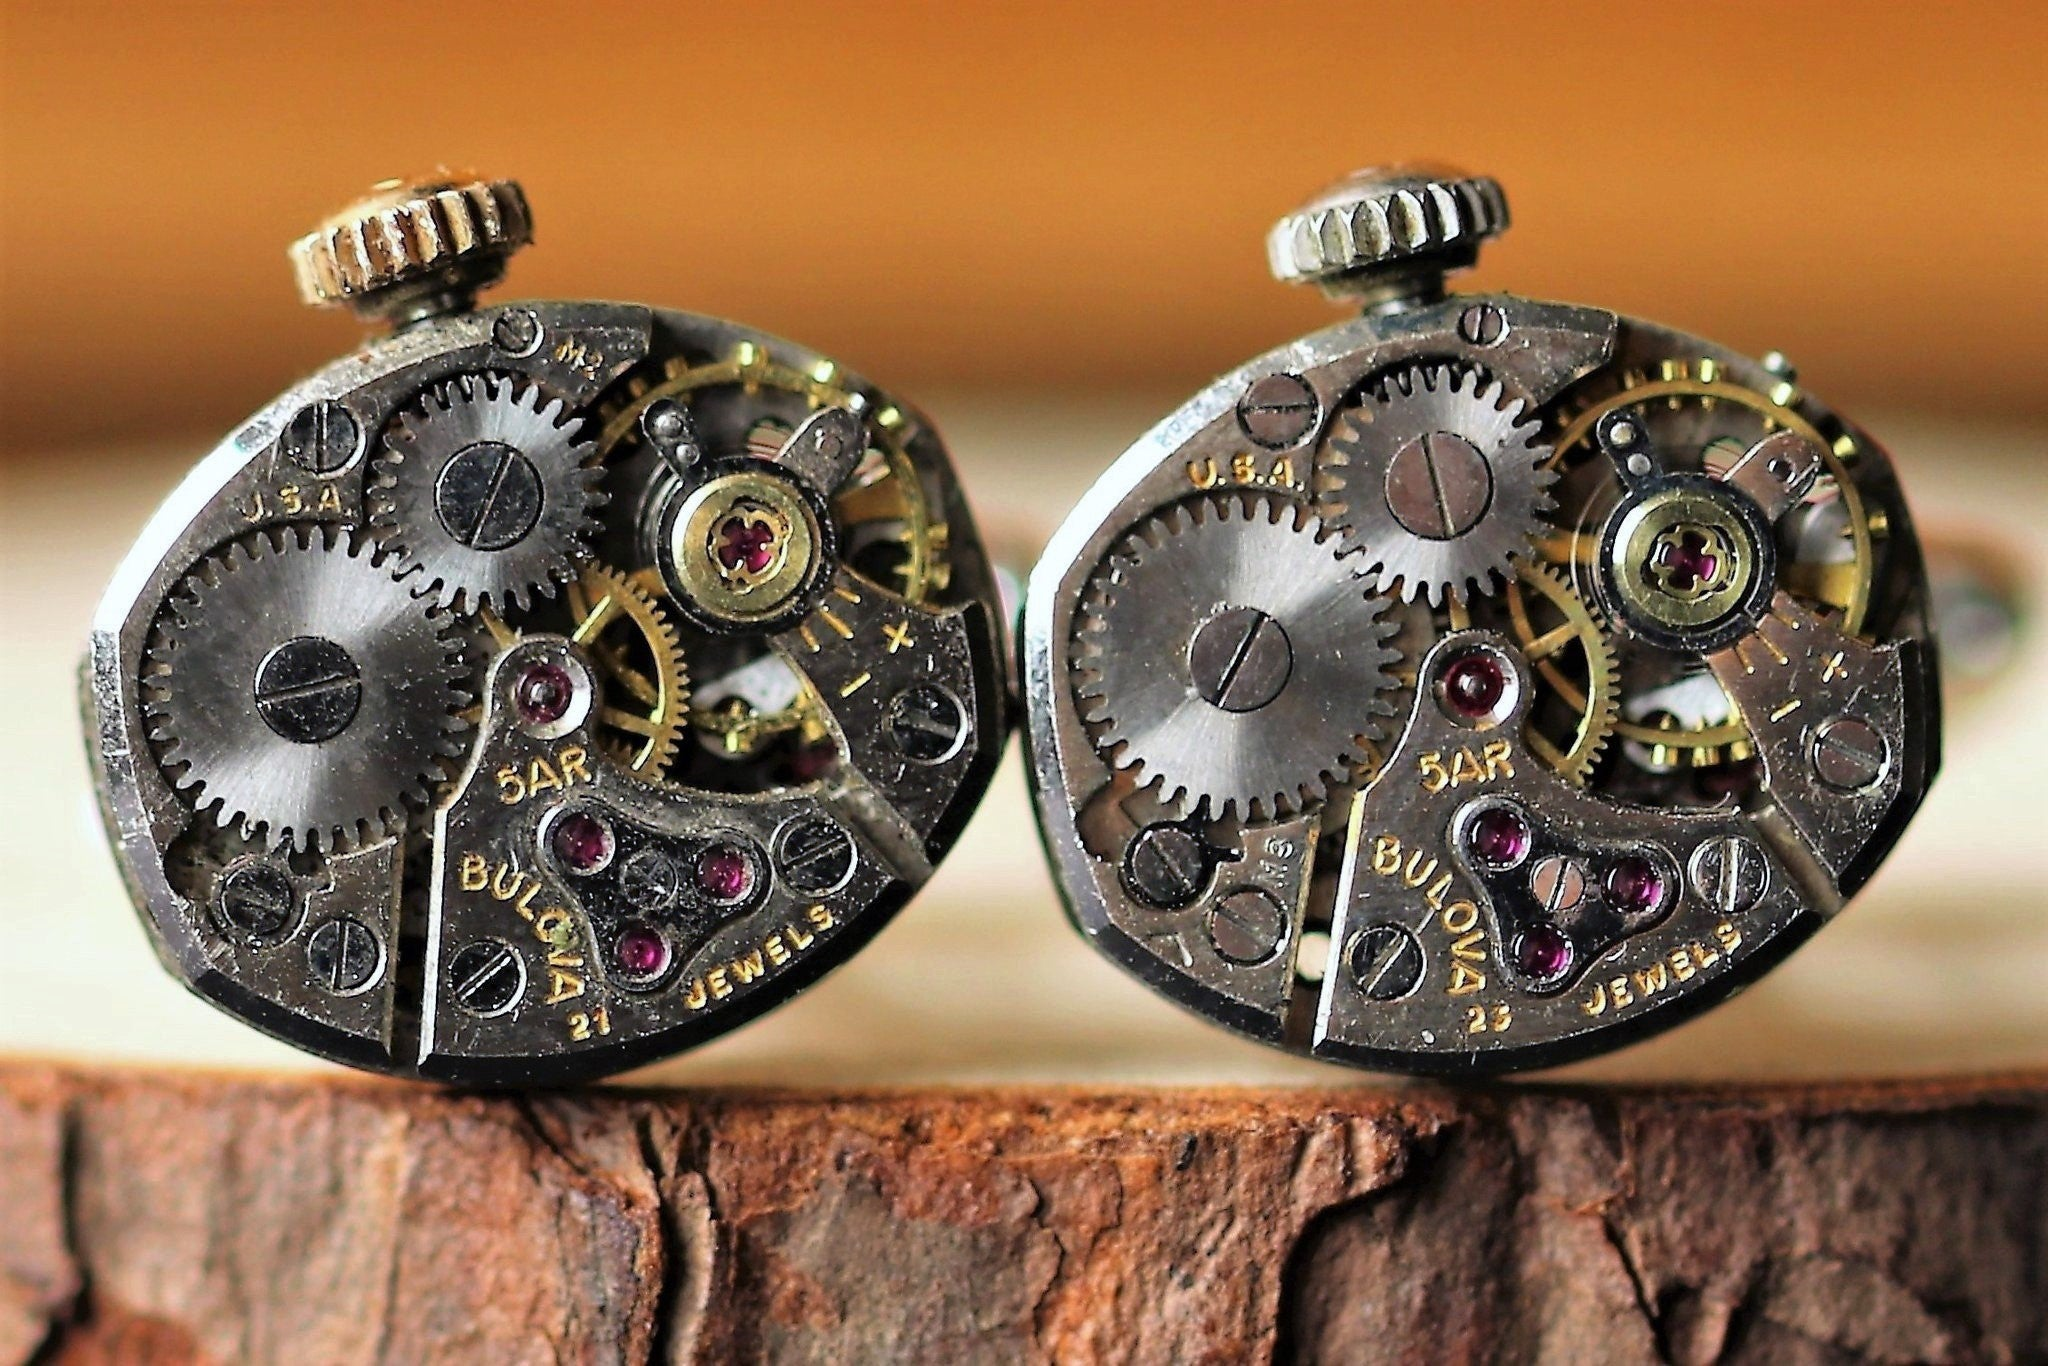 Ocular Watch Movement Cuff Links - Bulova Movement